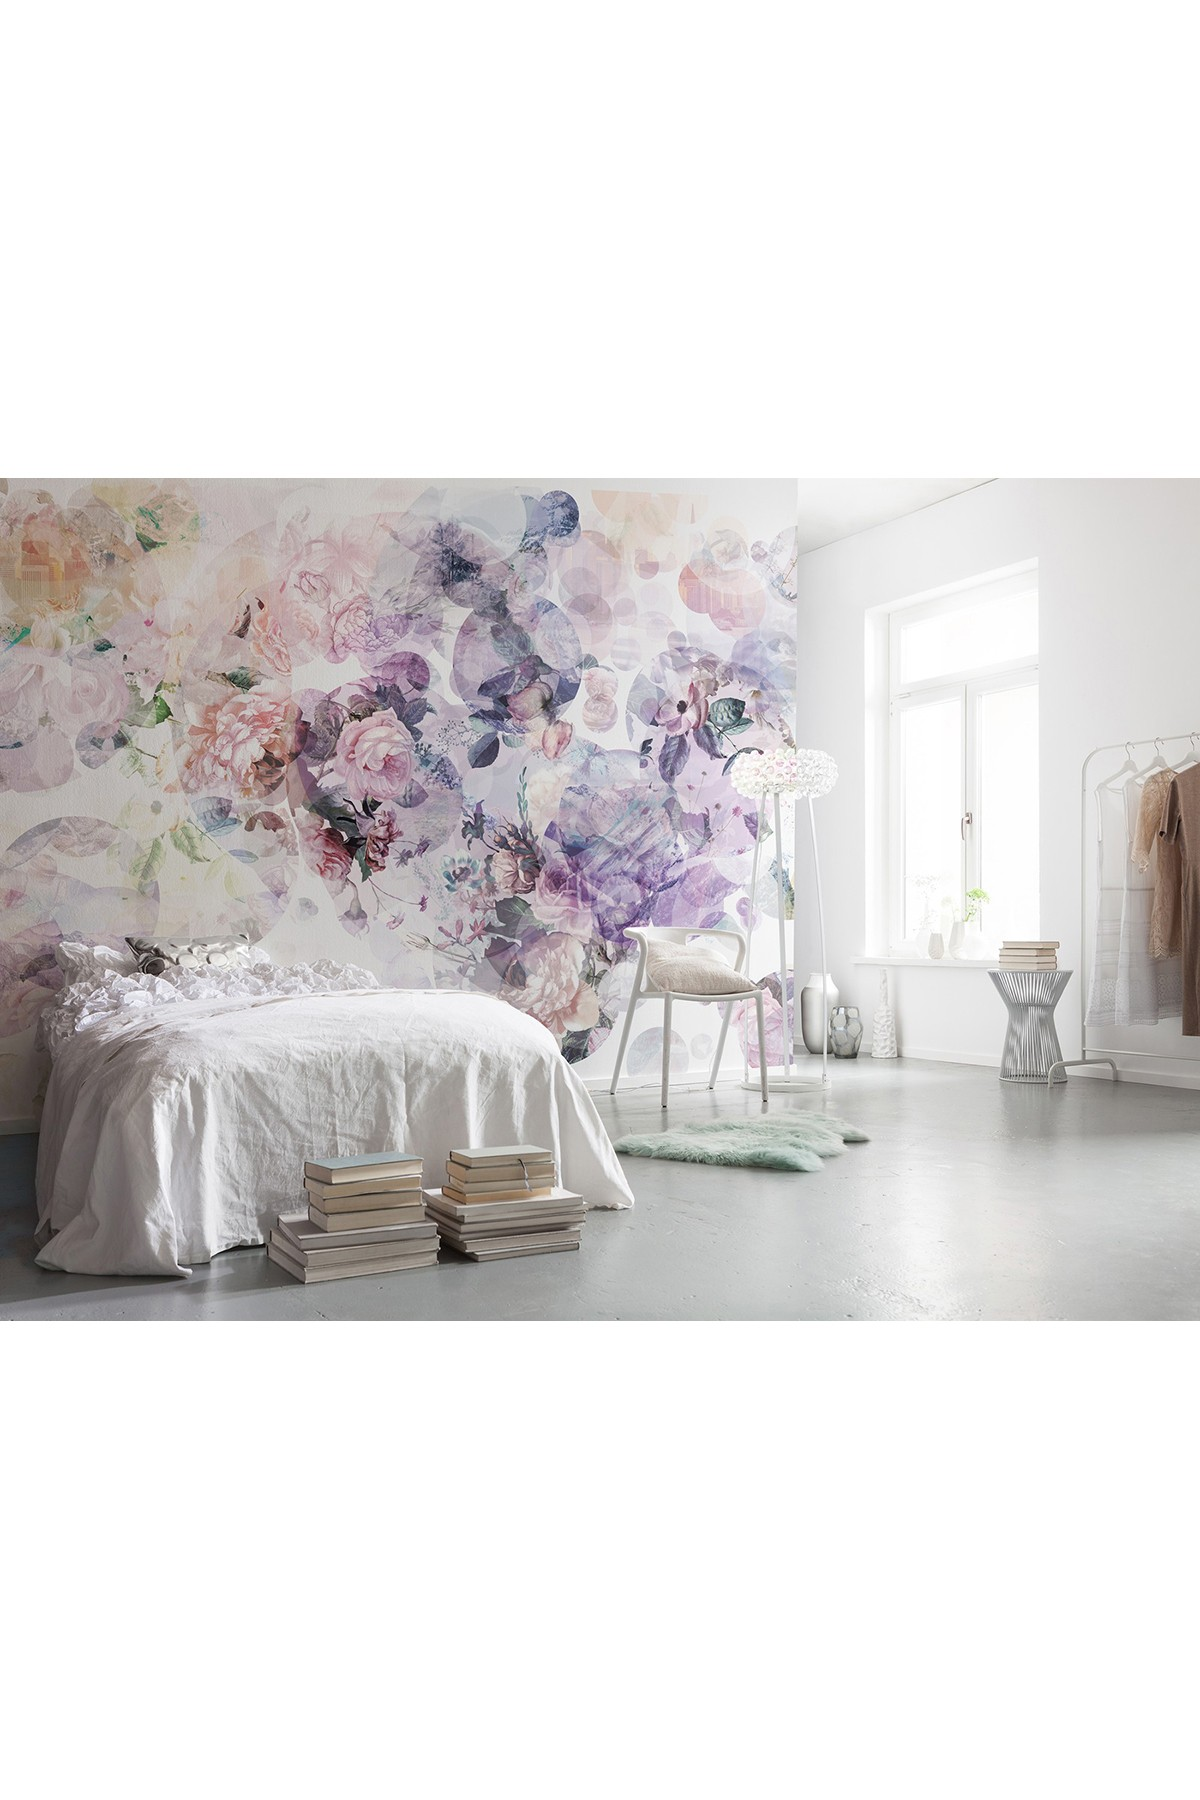 Brewster Home Fashions Wall Murals Images home design wall stickers